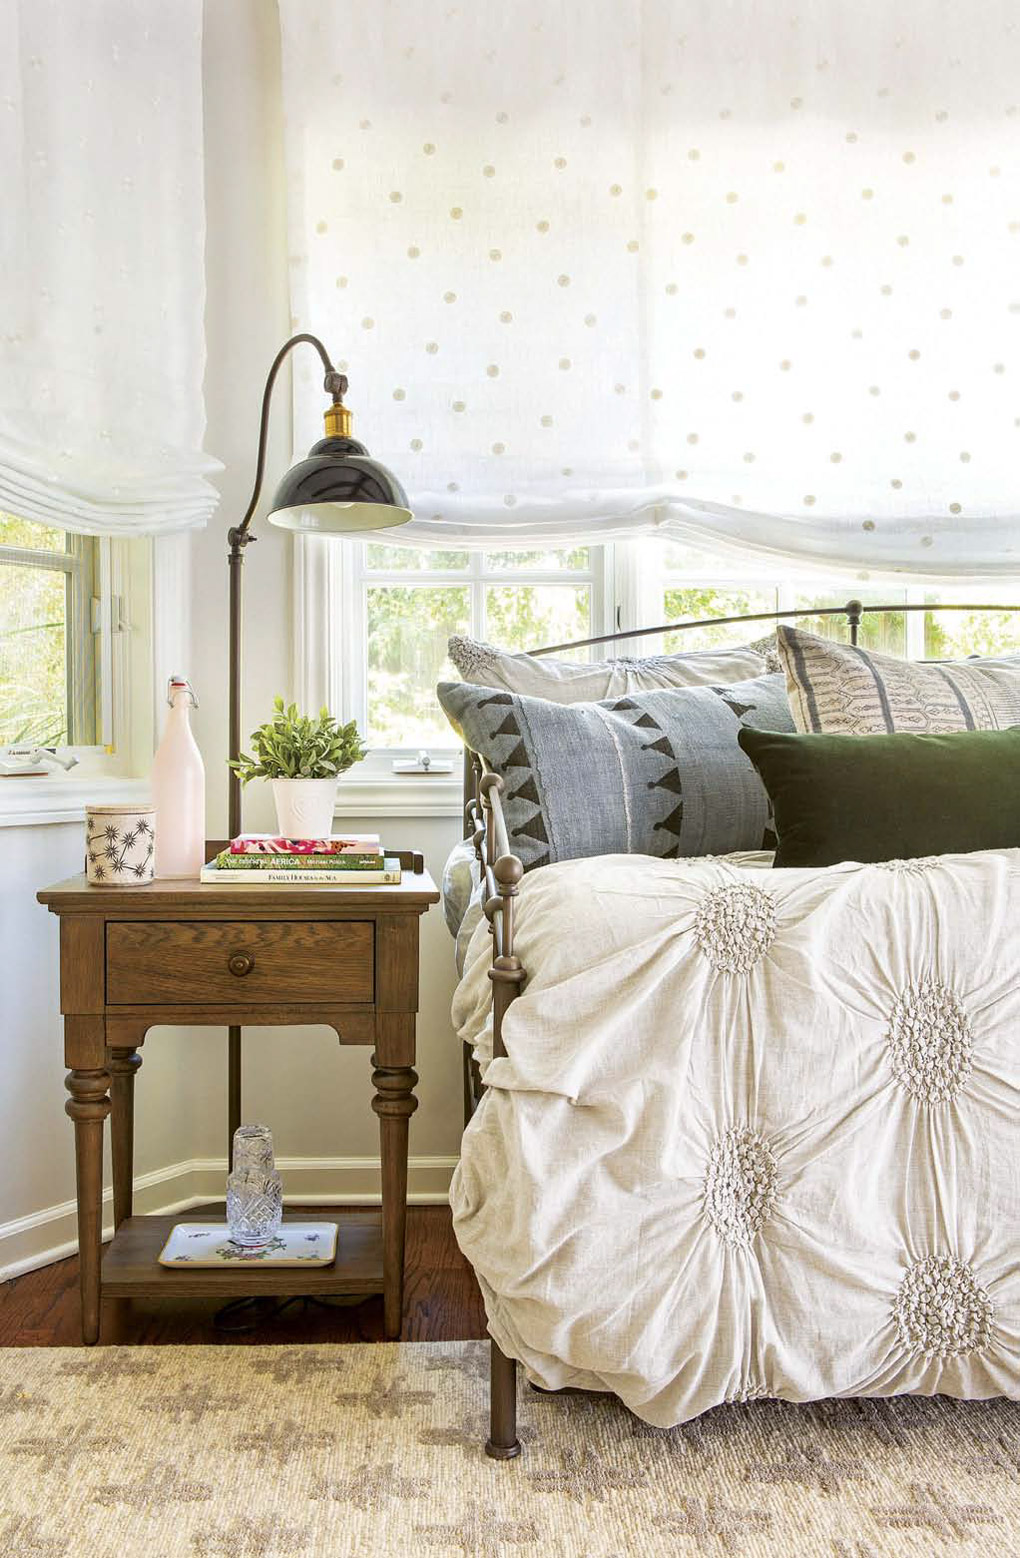 Guest room with an iron daybed next to an ornate bedside table topped with a lamp.